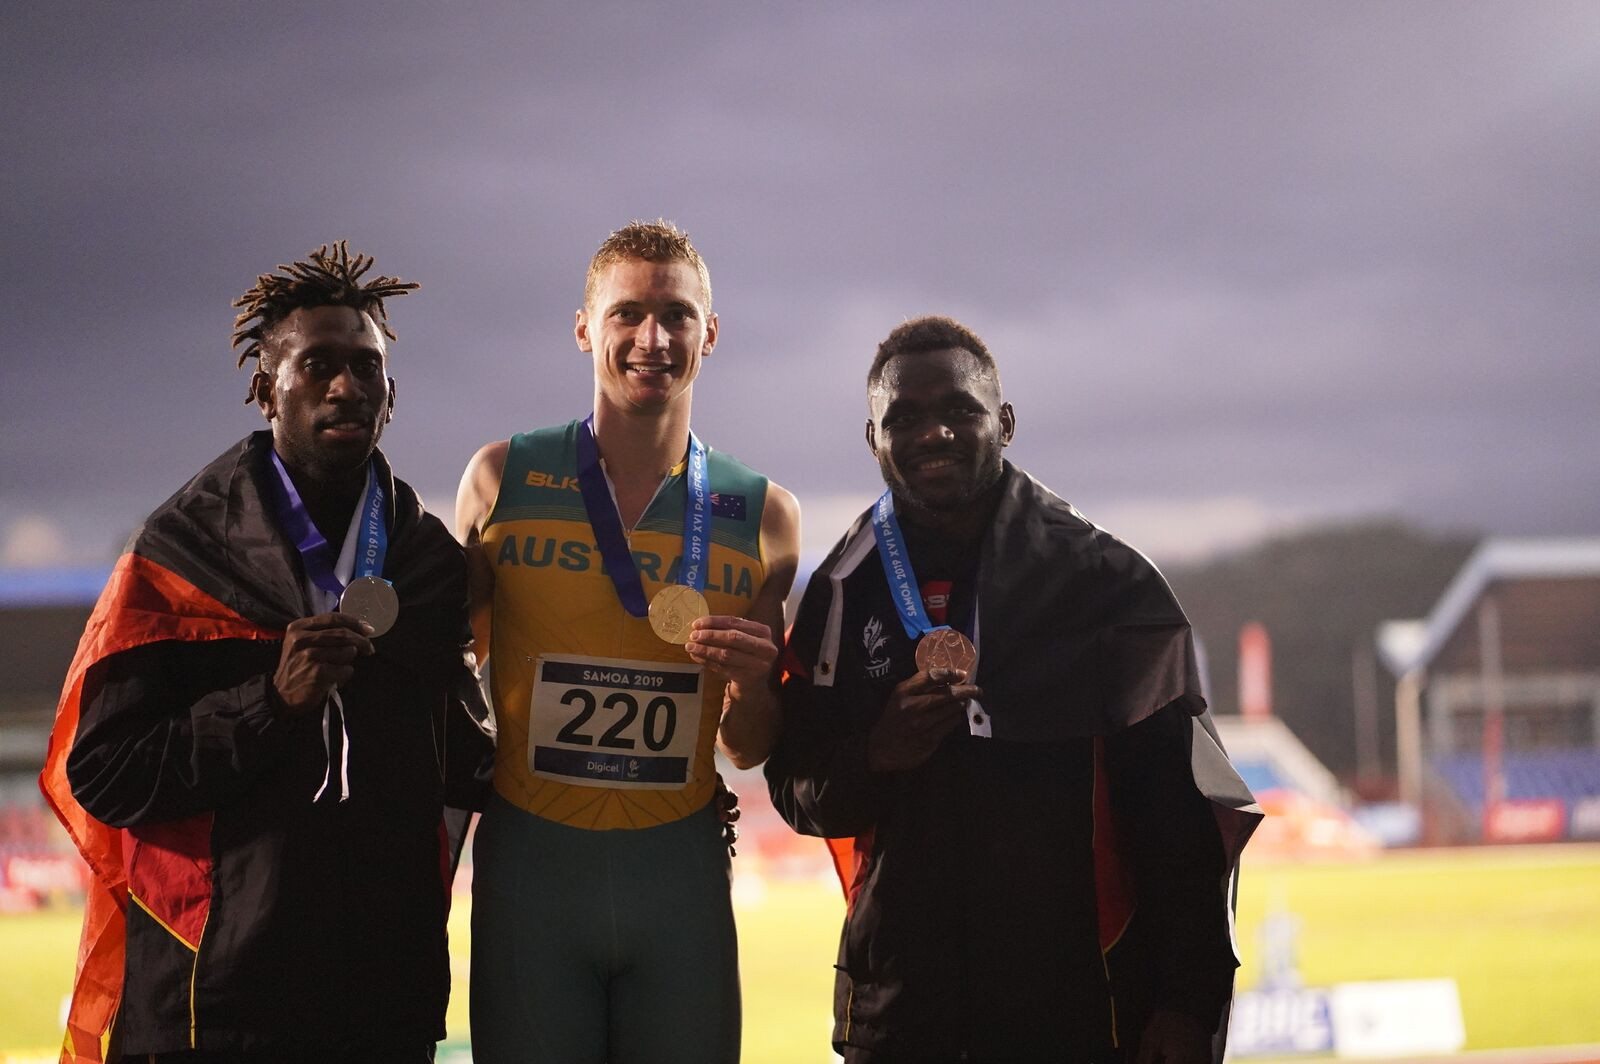 Steven Solomon poses with his gold medal after breaking the Pacific Games men's 400m record ©Games News Service